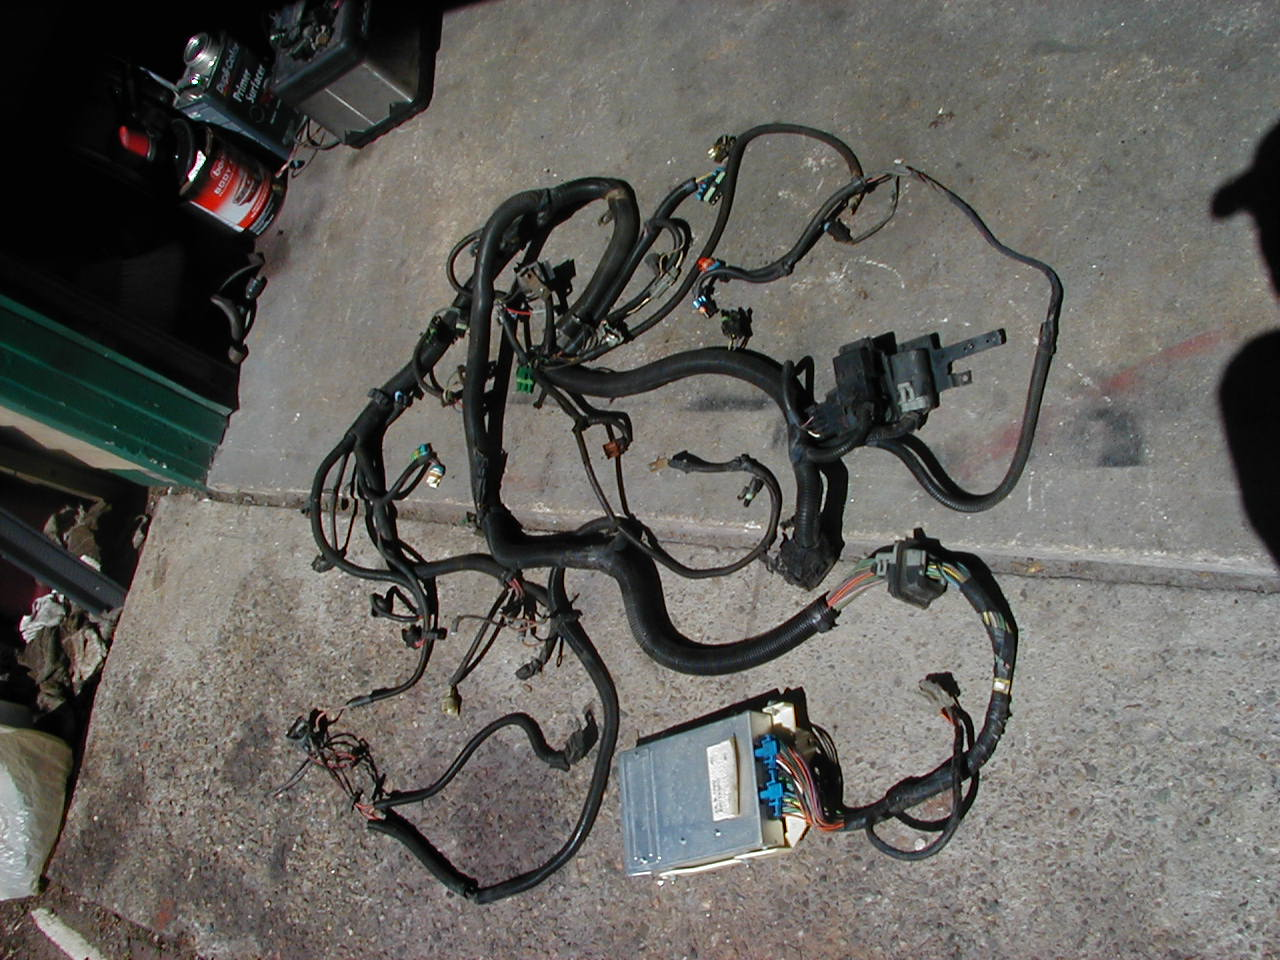 WiringV8Auto88ECM3  V Wiring Harness on battery harness, maxi-seal harness, safety harness, pony harness, amp bypass harness, fall protection harness, pet harness, engine harness, cable harness, nakamichi harness, alpine stereo harness, oxygen sensor extension harness, obd0 to obd1 conversion harness, dog harness, radio harness, electrical harness, suspension harness,